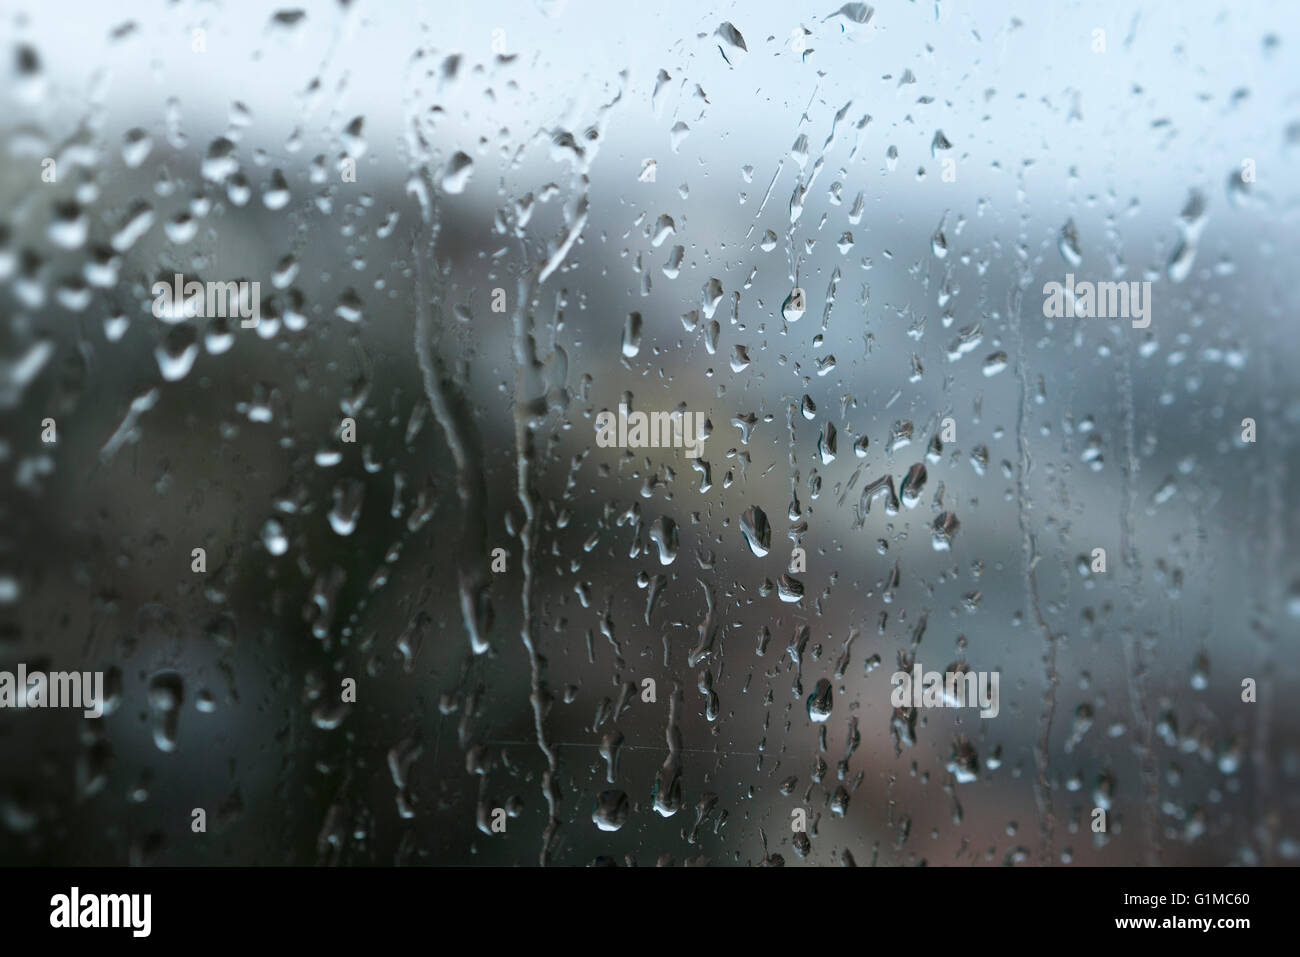 A close up of rain drops dripping down a window on a wet rainy day - Stock Image